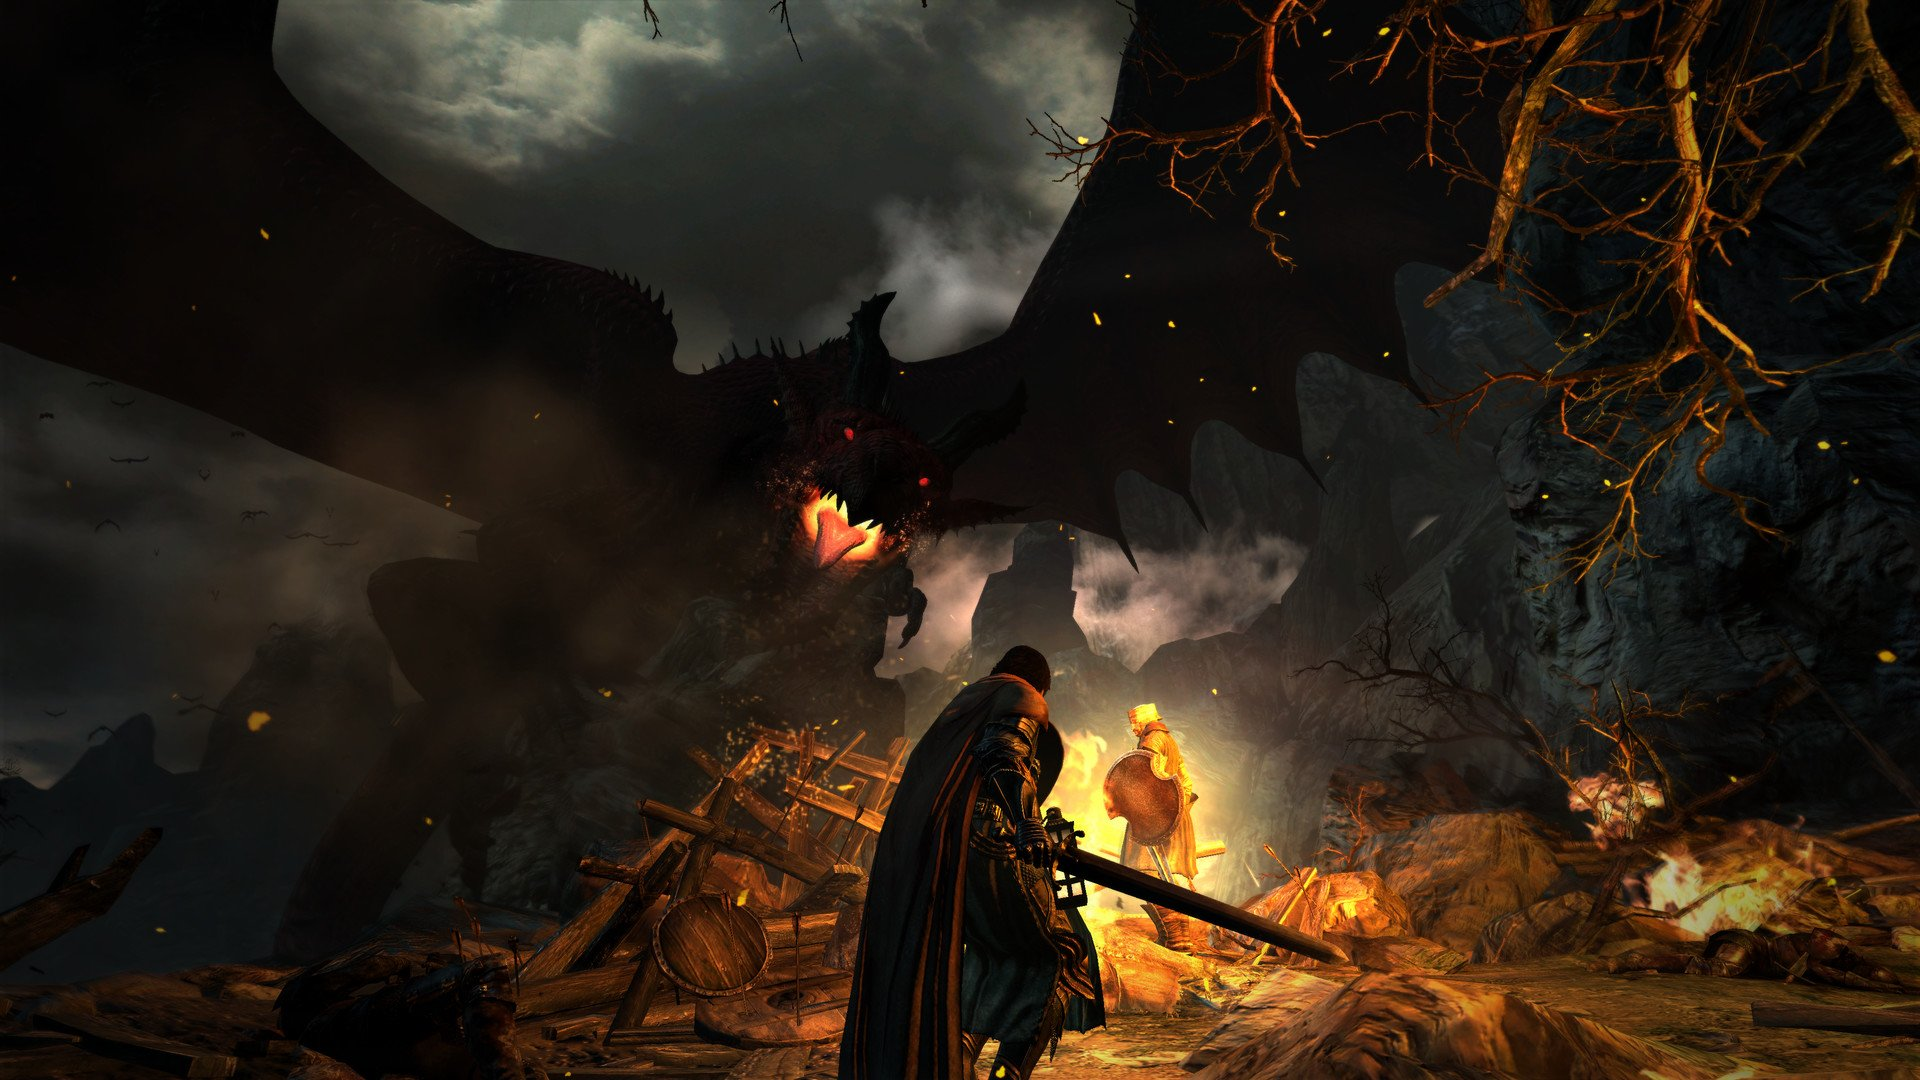 Dragon's Dogma: Dark Arisen will release for Nintendo Switch this April